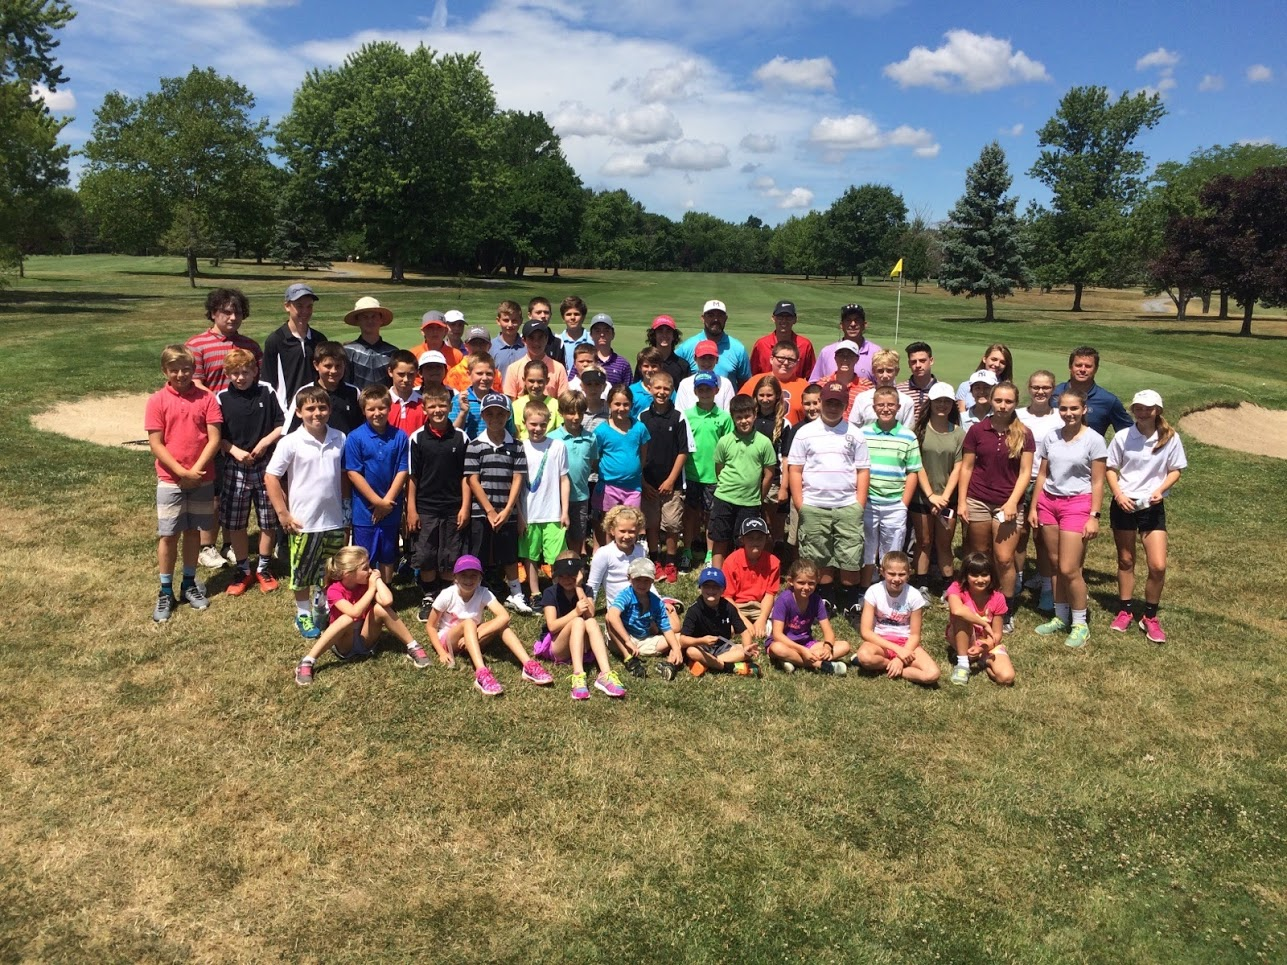 2016 Junior Golf Camp of the Finger Lakes at SFCC a big success